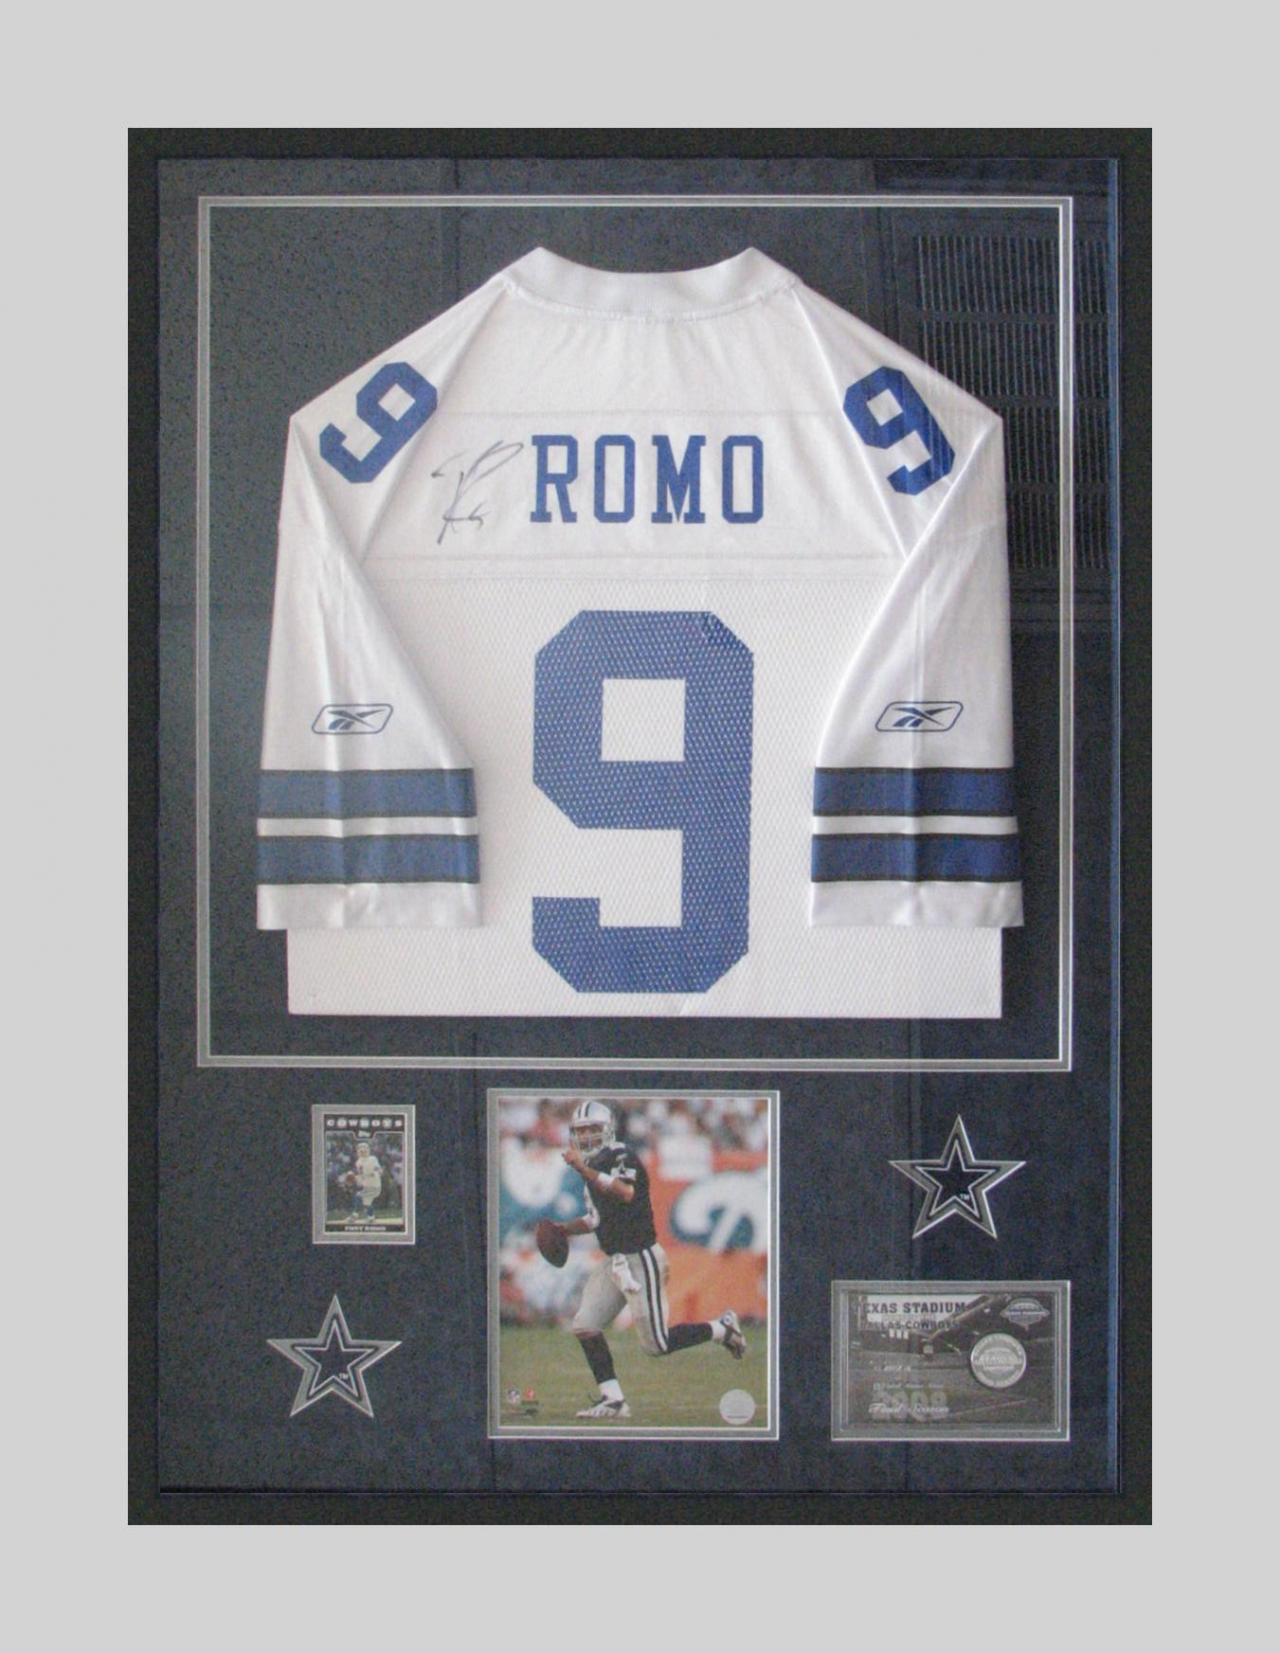 San antonio fastframe terrell owens framed football jersey shadowbox framing of tony romo football jersey jeuxipadfo Gallery